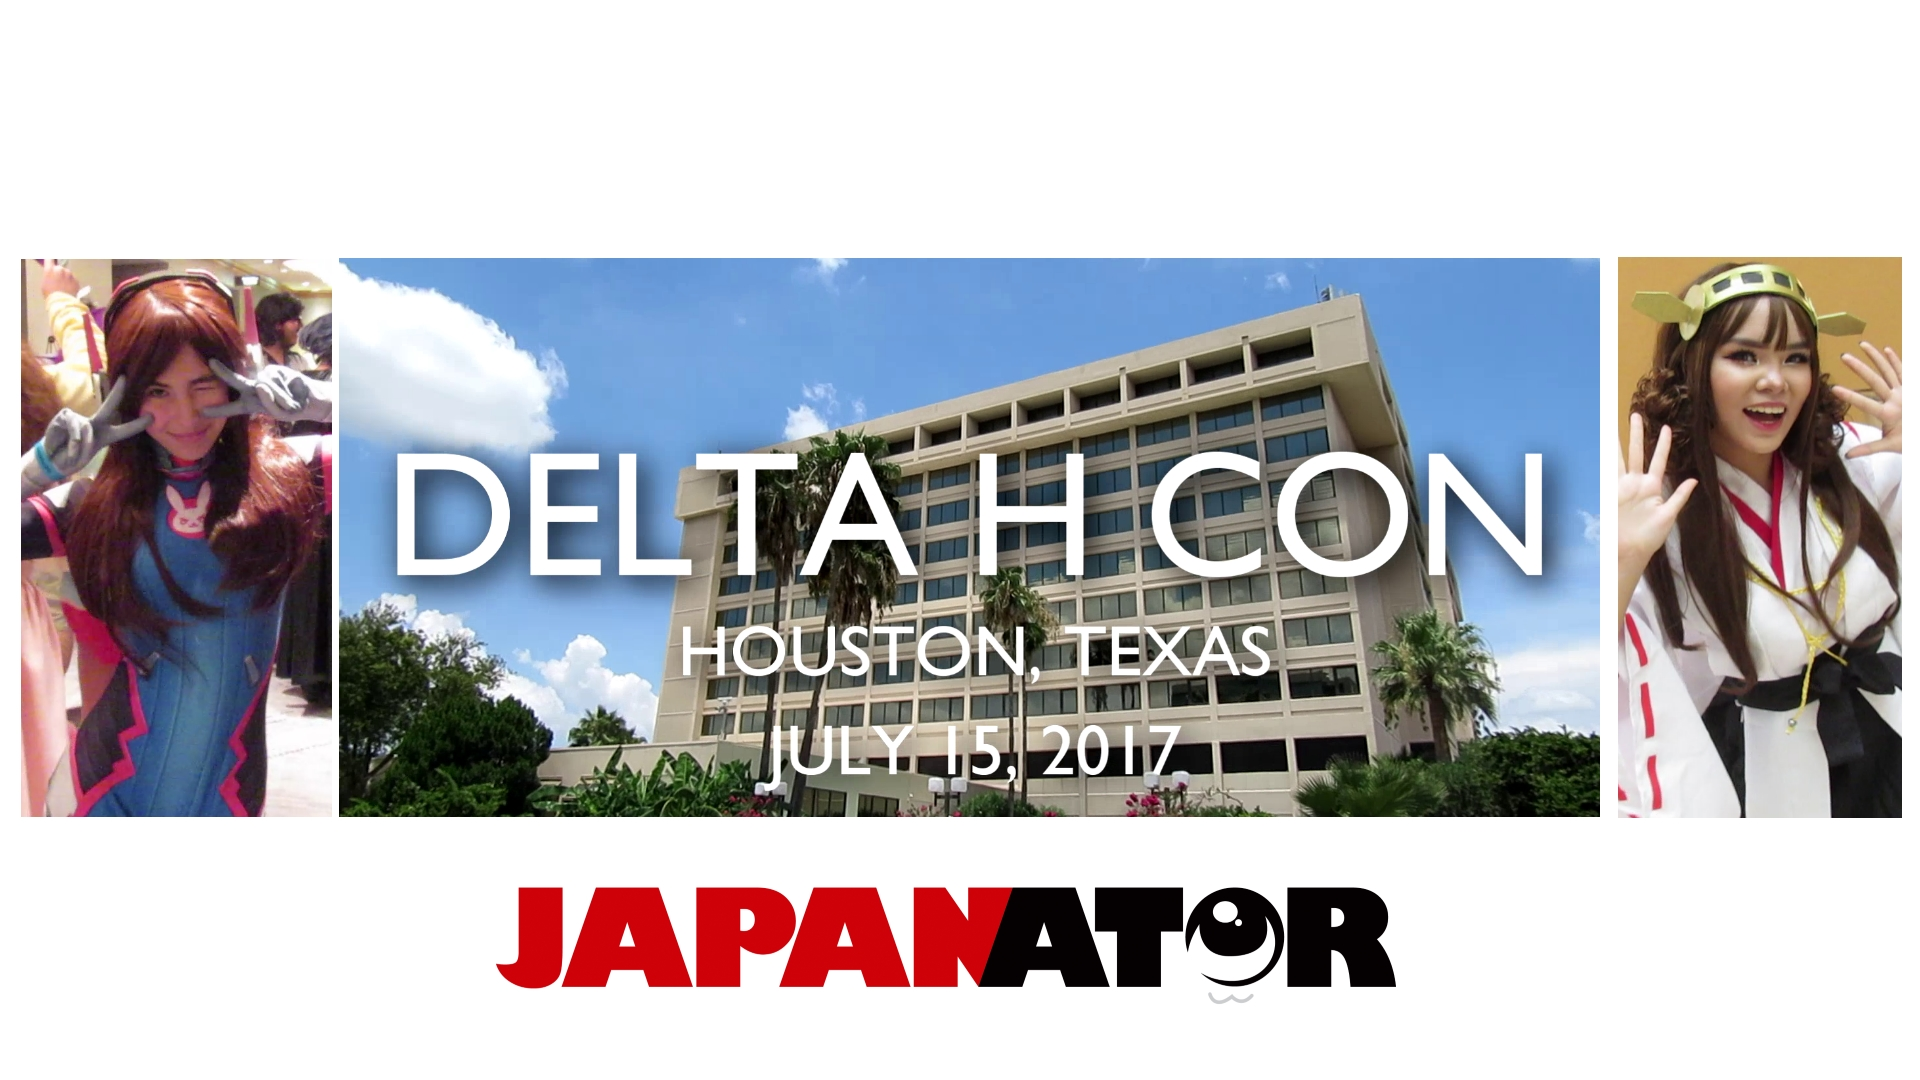 See a bit of cosplay and con with this Delta H Con video screenshot